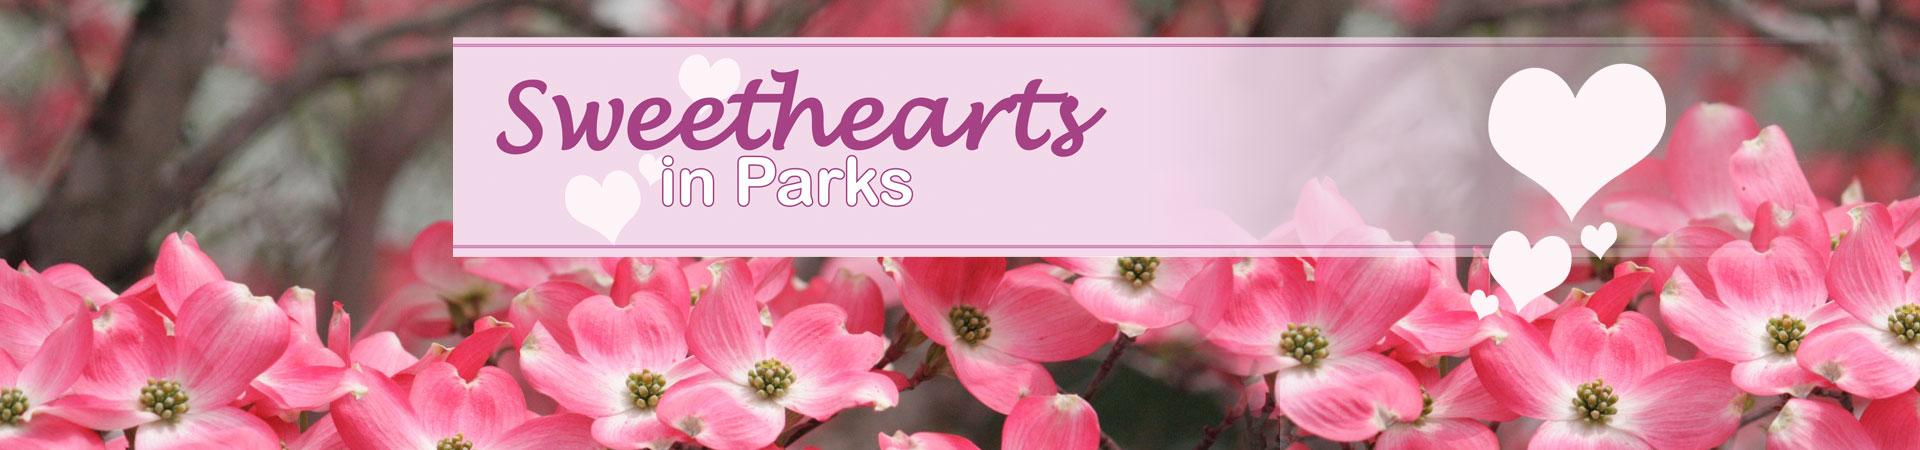 Sweethearts in Parks Promotion image